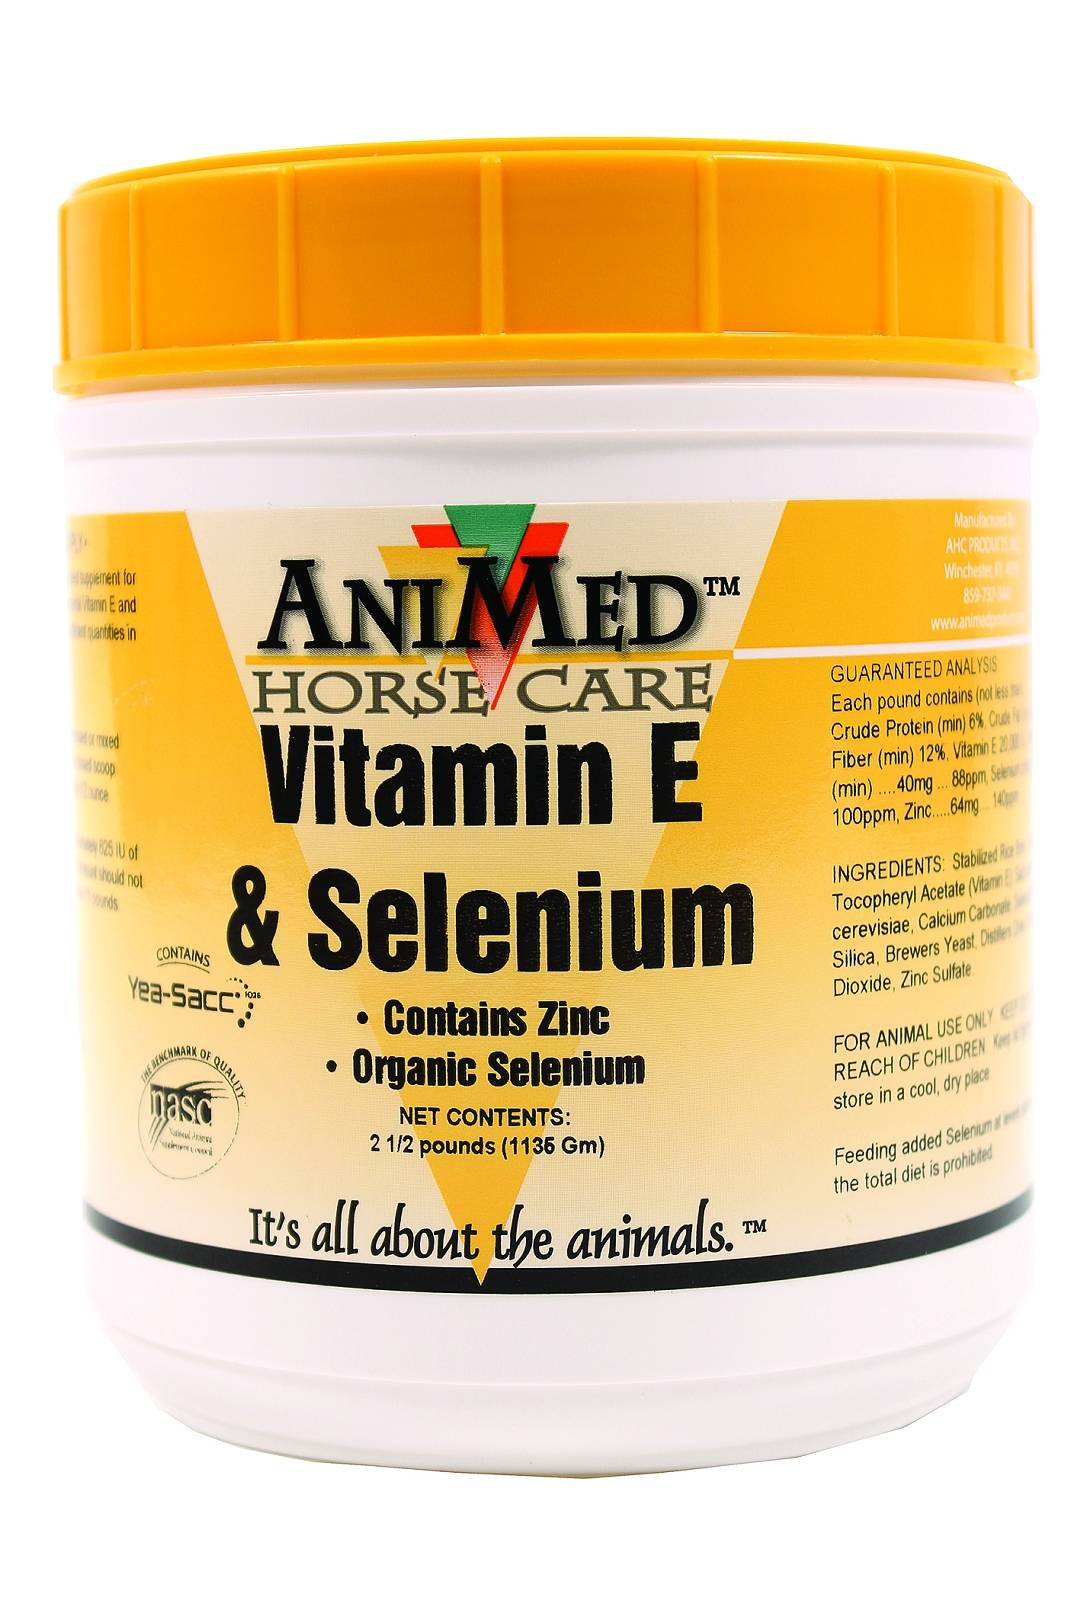 AniMed Vitamin E & Selenium